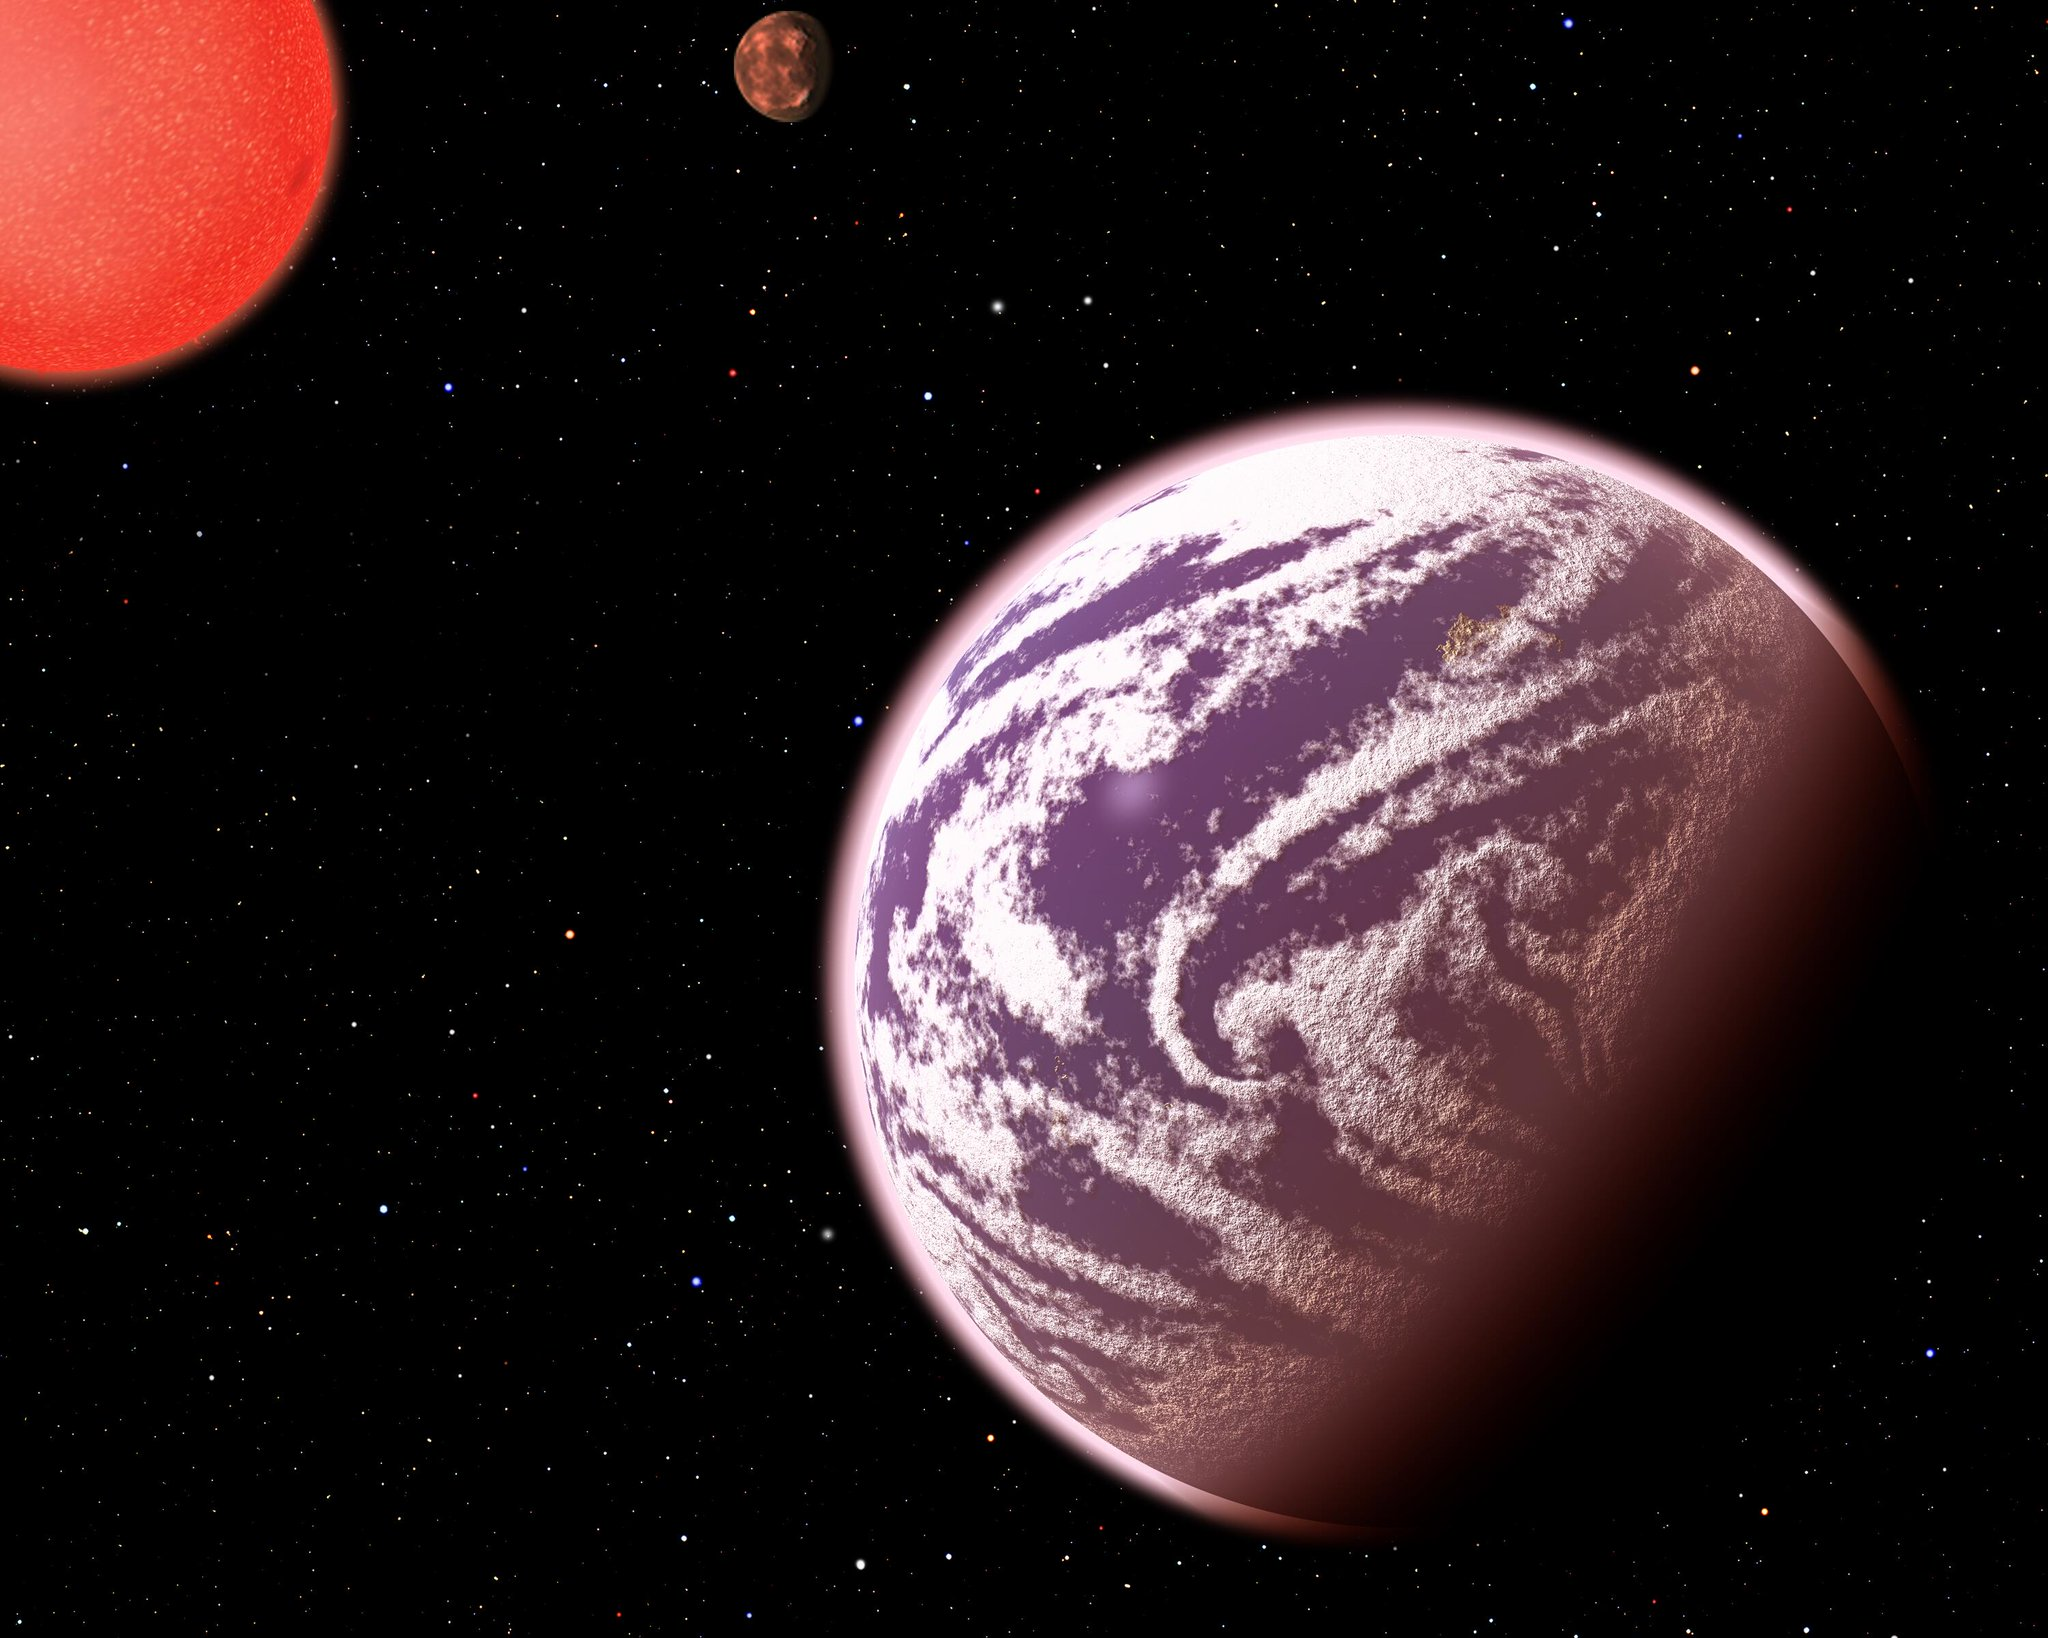 planet KOI-314c artist's conception